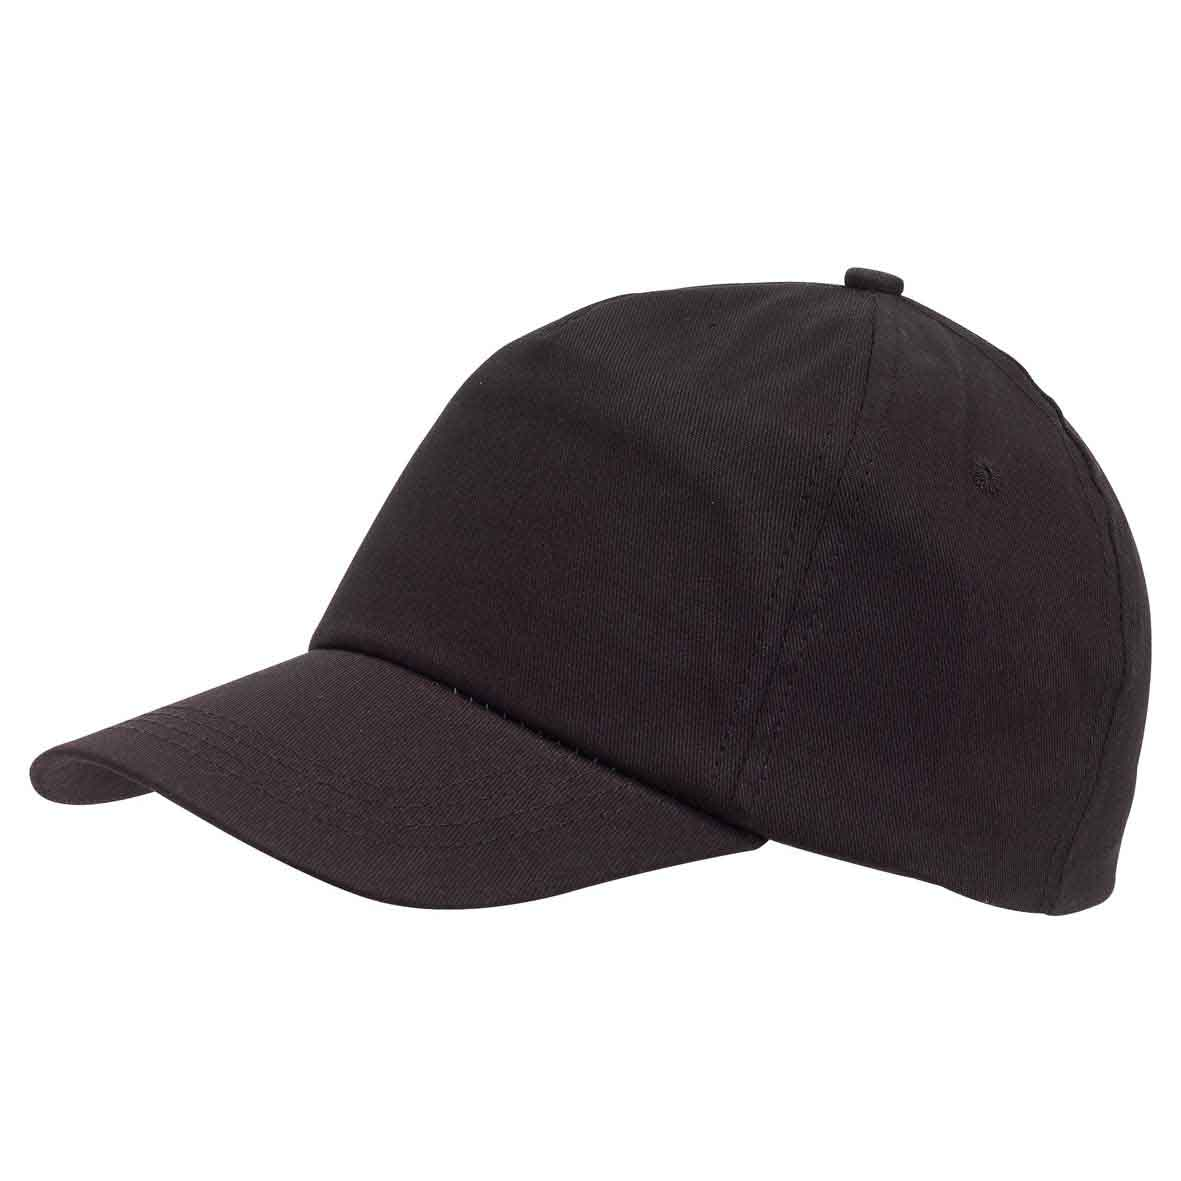 5 panel cap 'Favourite' - Black ins-0702055